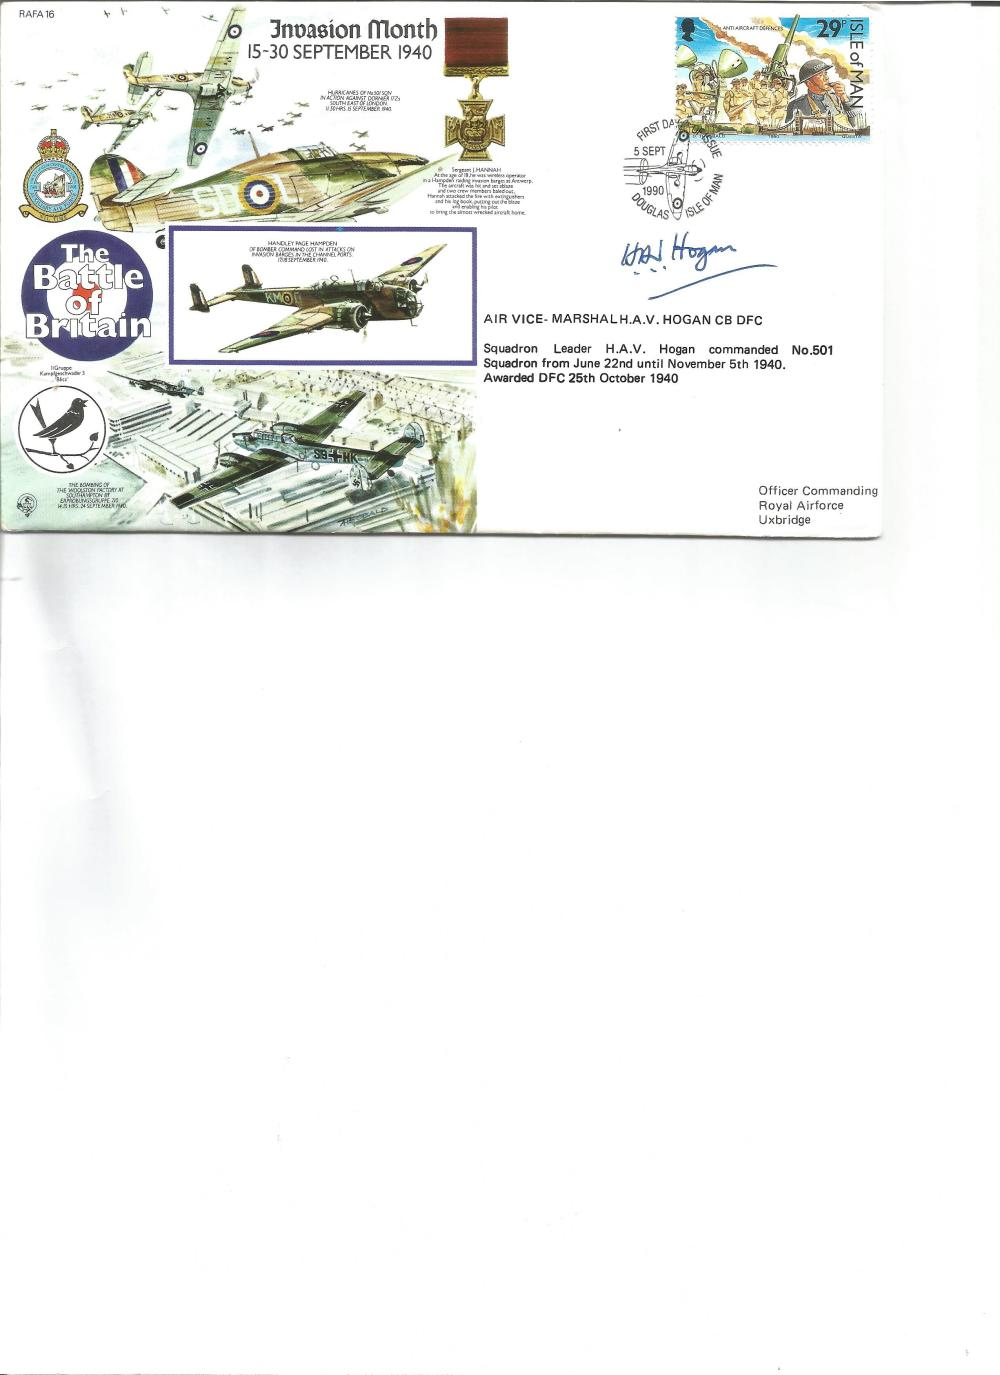 Air Vice-Marshal A V Hogan DFC signed Invasion month cover. Good Condition. All signed pieces come